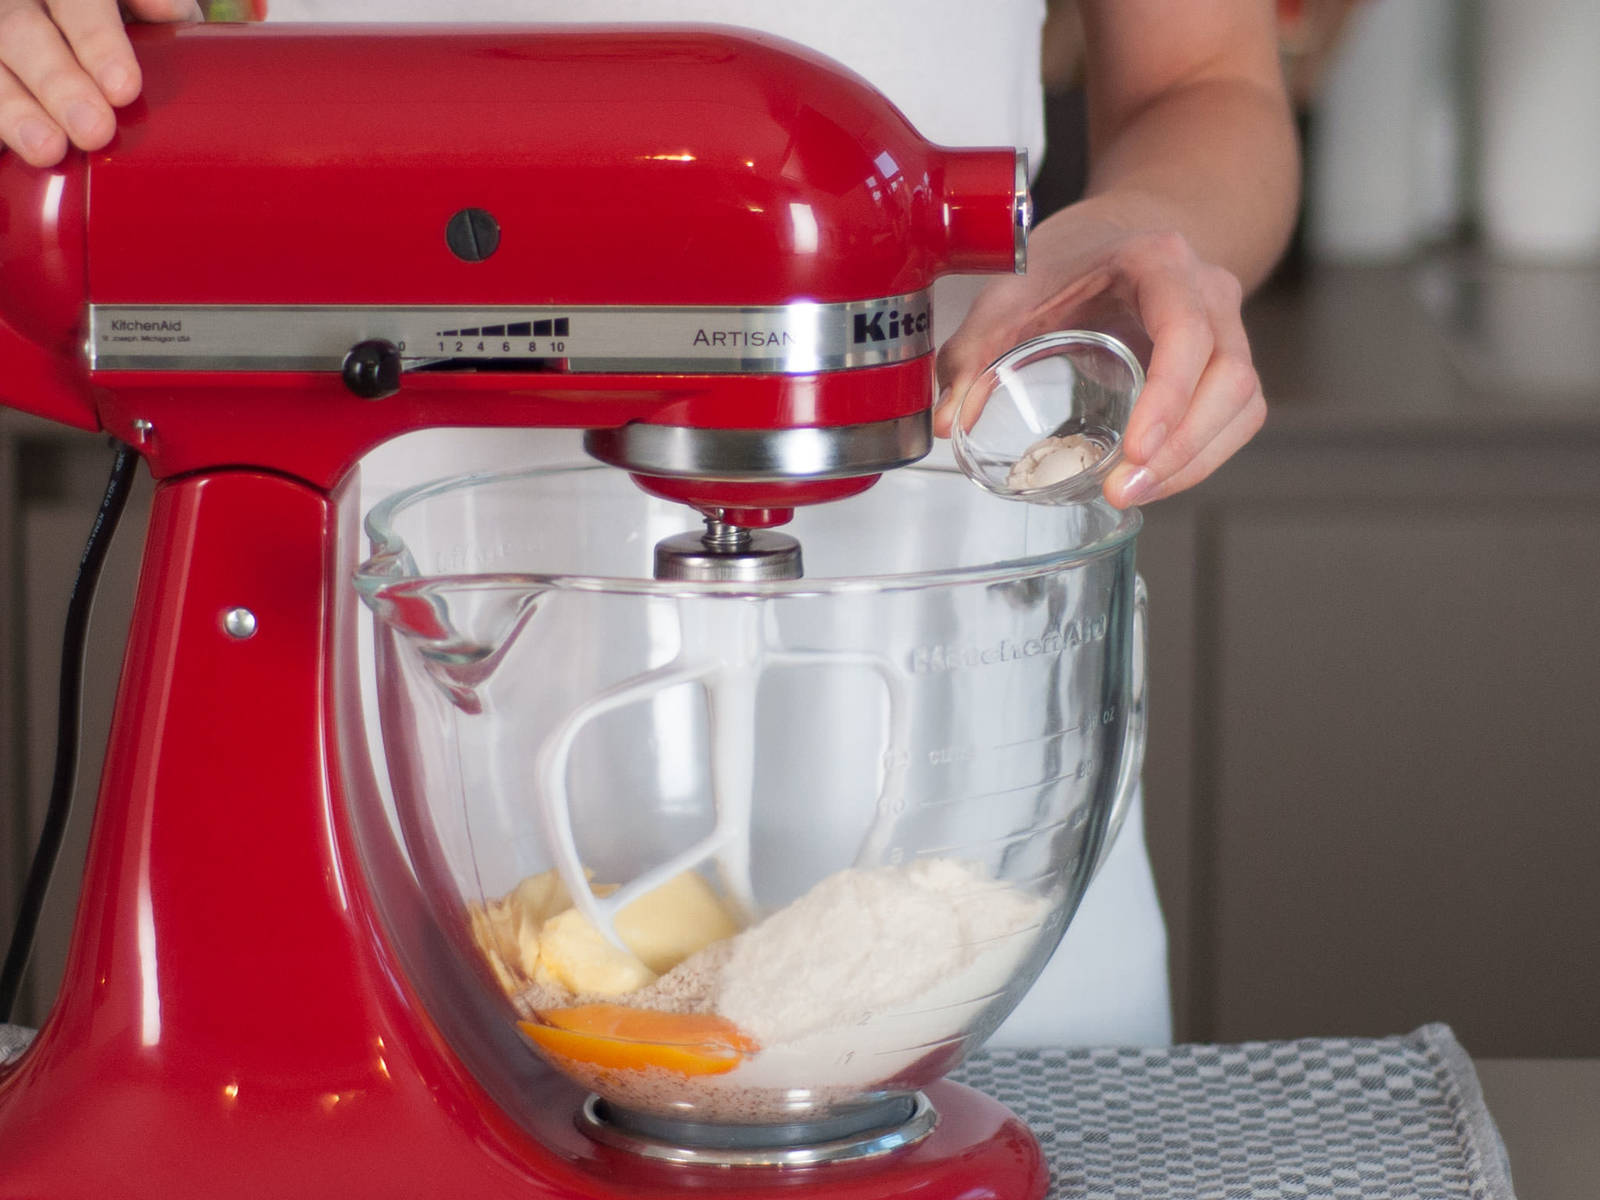 Preheat oven to 170°C/335°F. In a standing mixer, beat together ground almonds, protein powder, egg yolk, Splenda, lemon juice, butter, and carob powder for approx. 2 – 3 min. until dough has a crumbly texture.